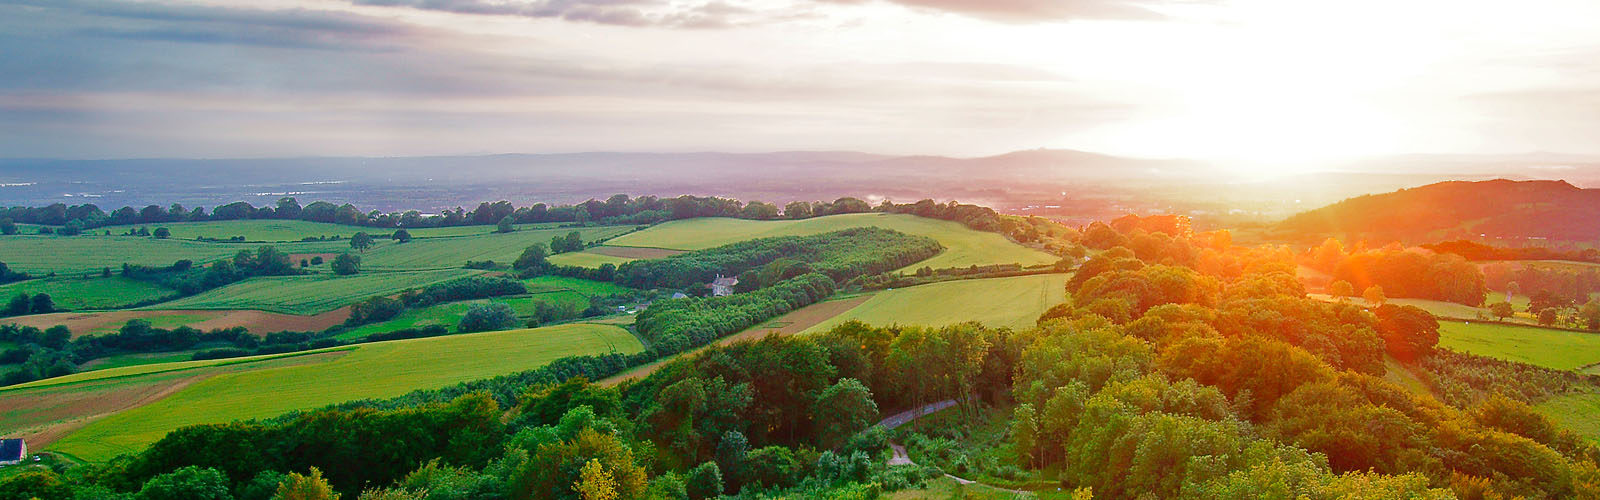 Sunset, with lens flare, in summer looking towards the Royal Forest of Dean from Painswick Beacon